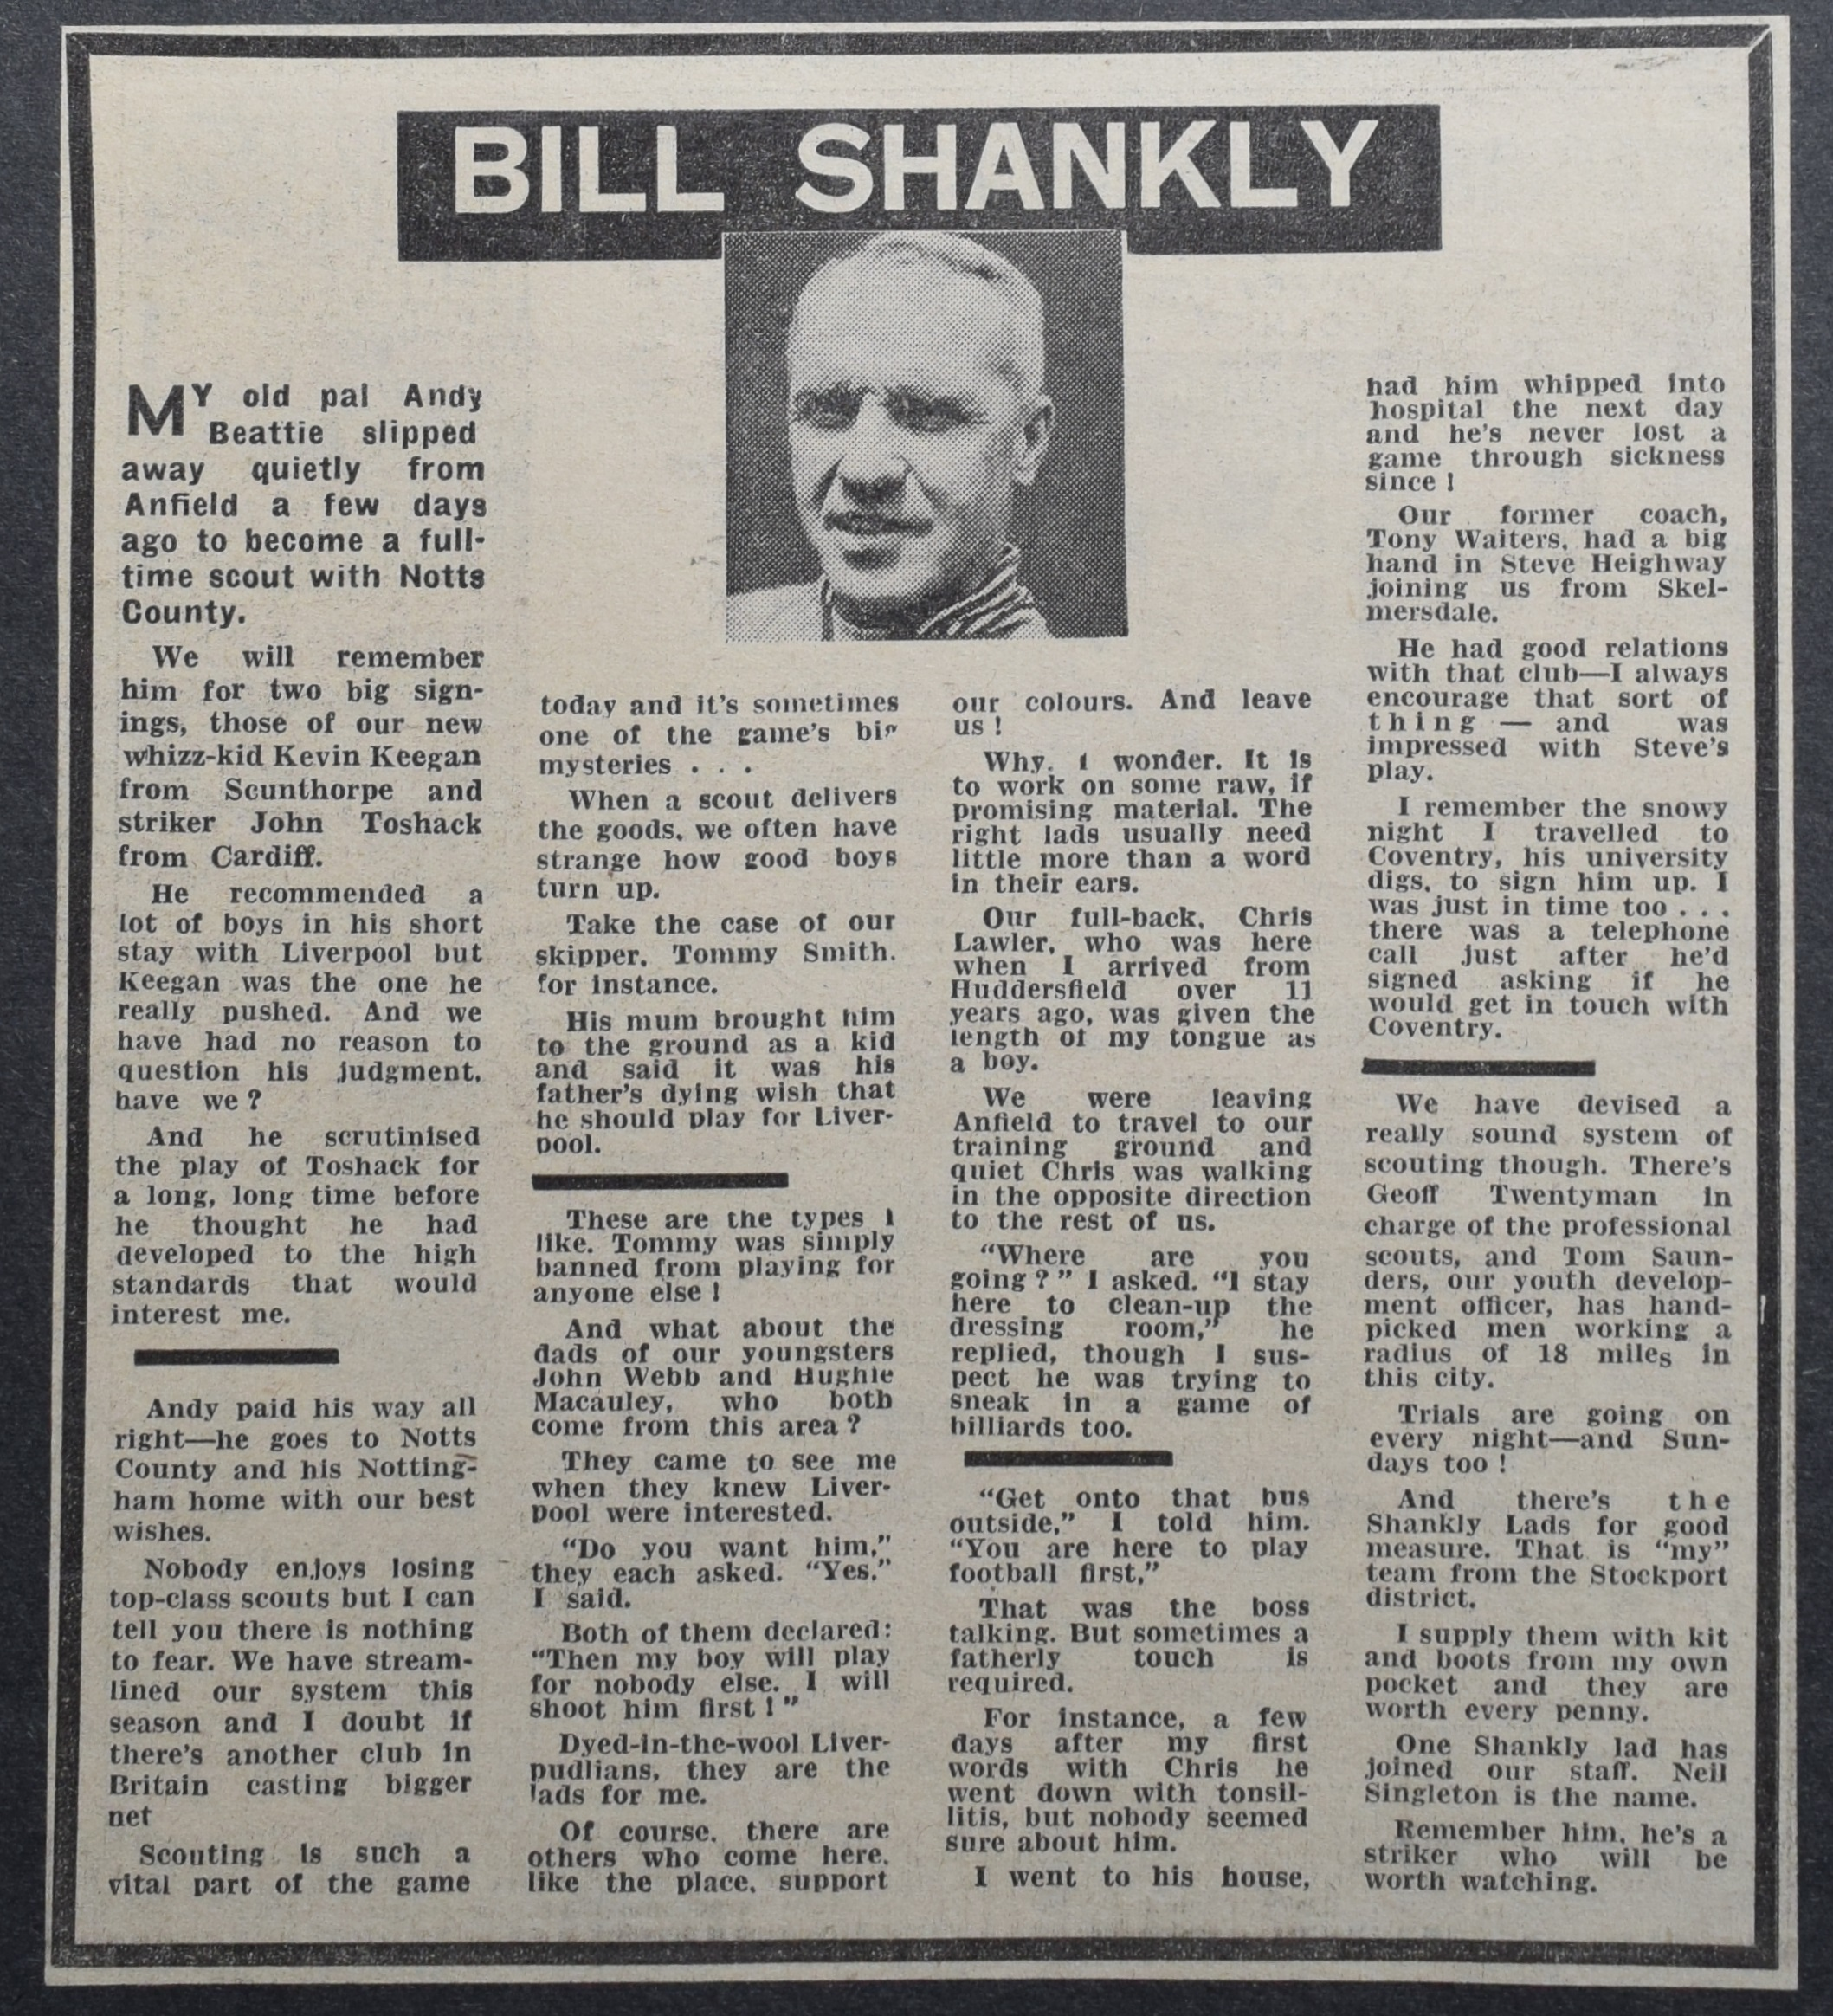 Bill Shankly's column - 7 September 1971